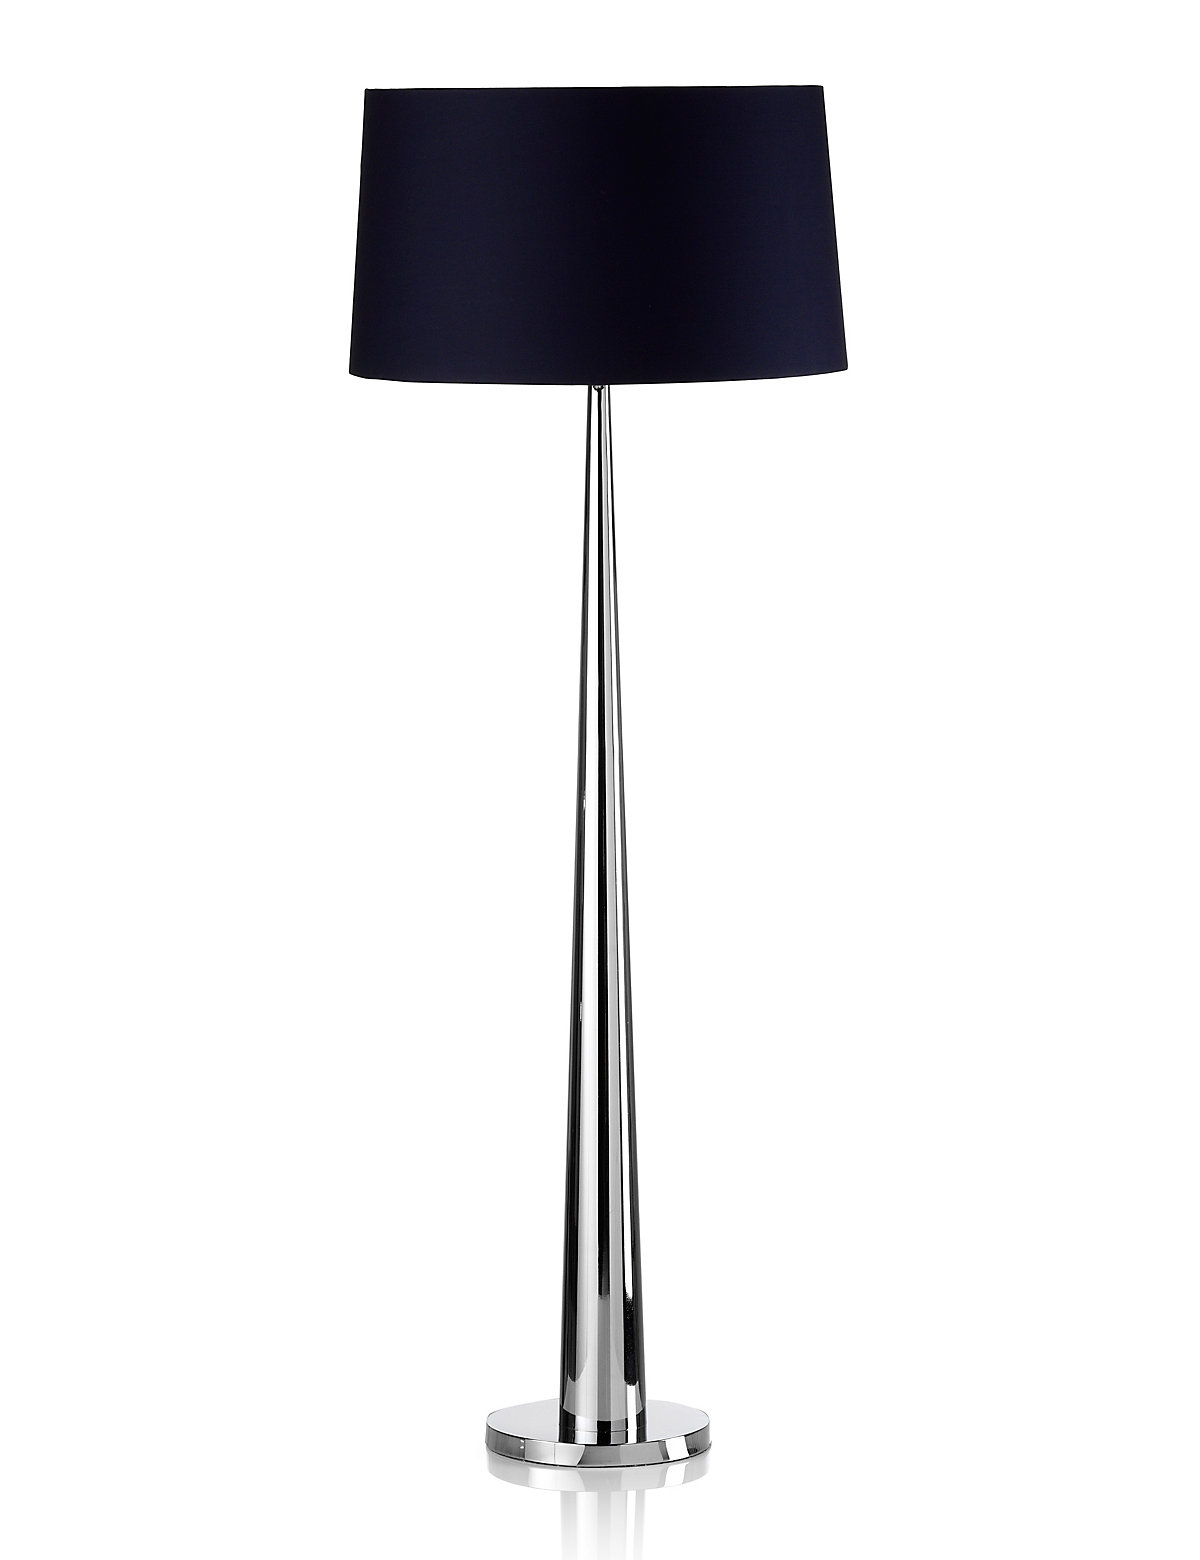 Buy cheap contemporary floor lamp compare lighting for Cheap contemporary floor lamps